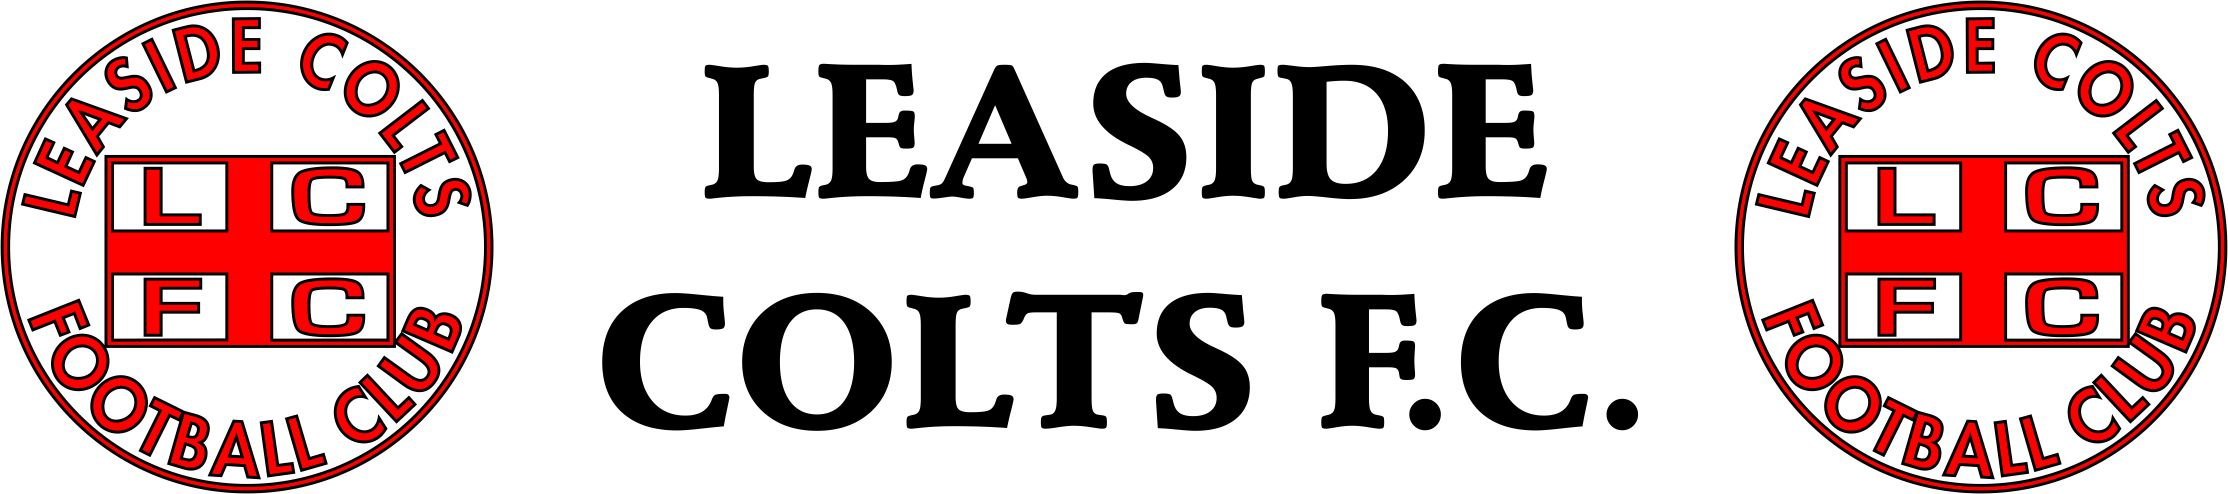 Leaside Colts